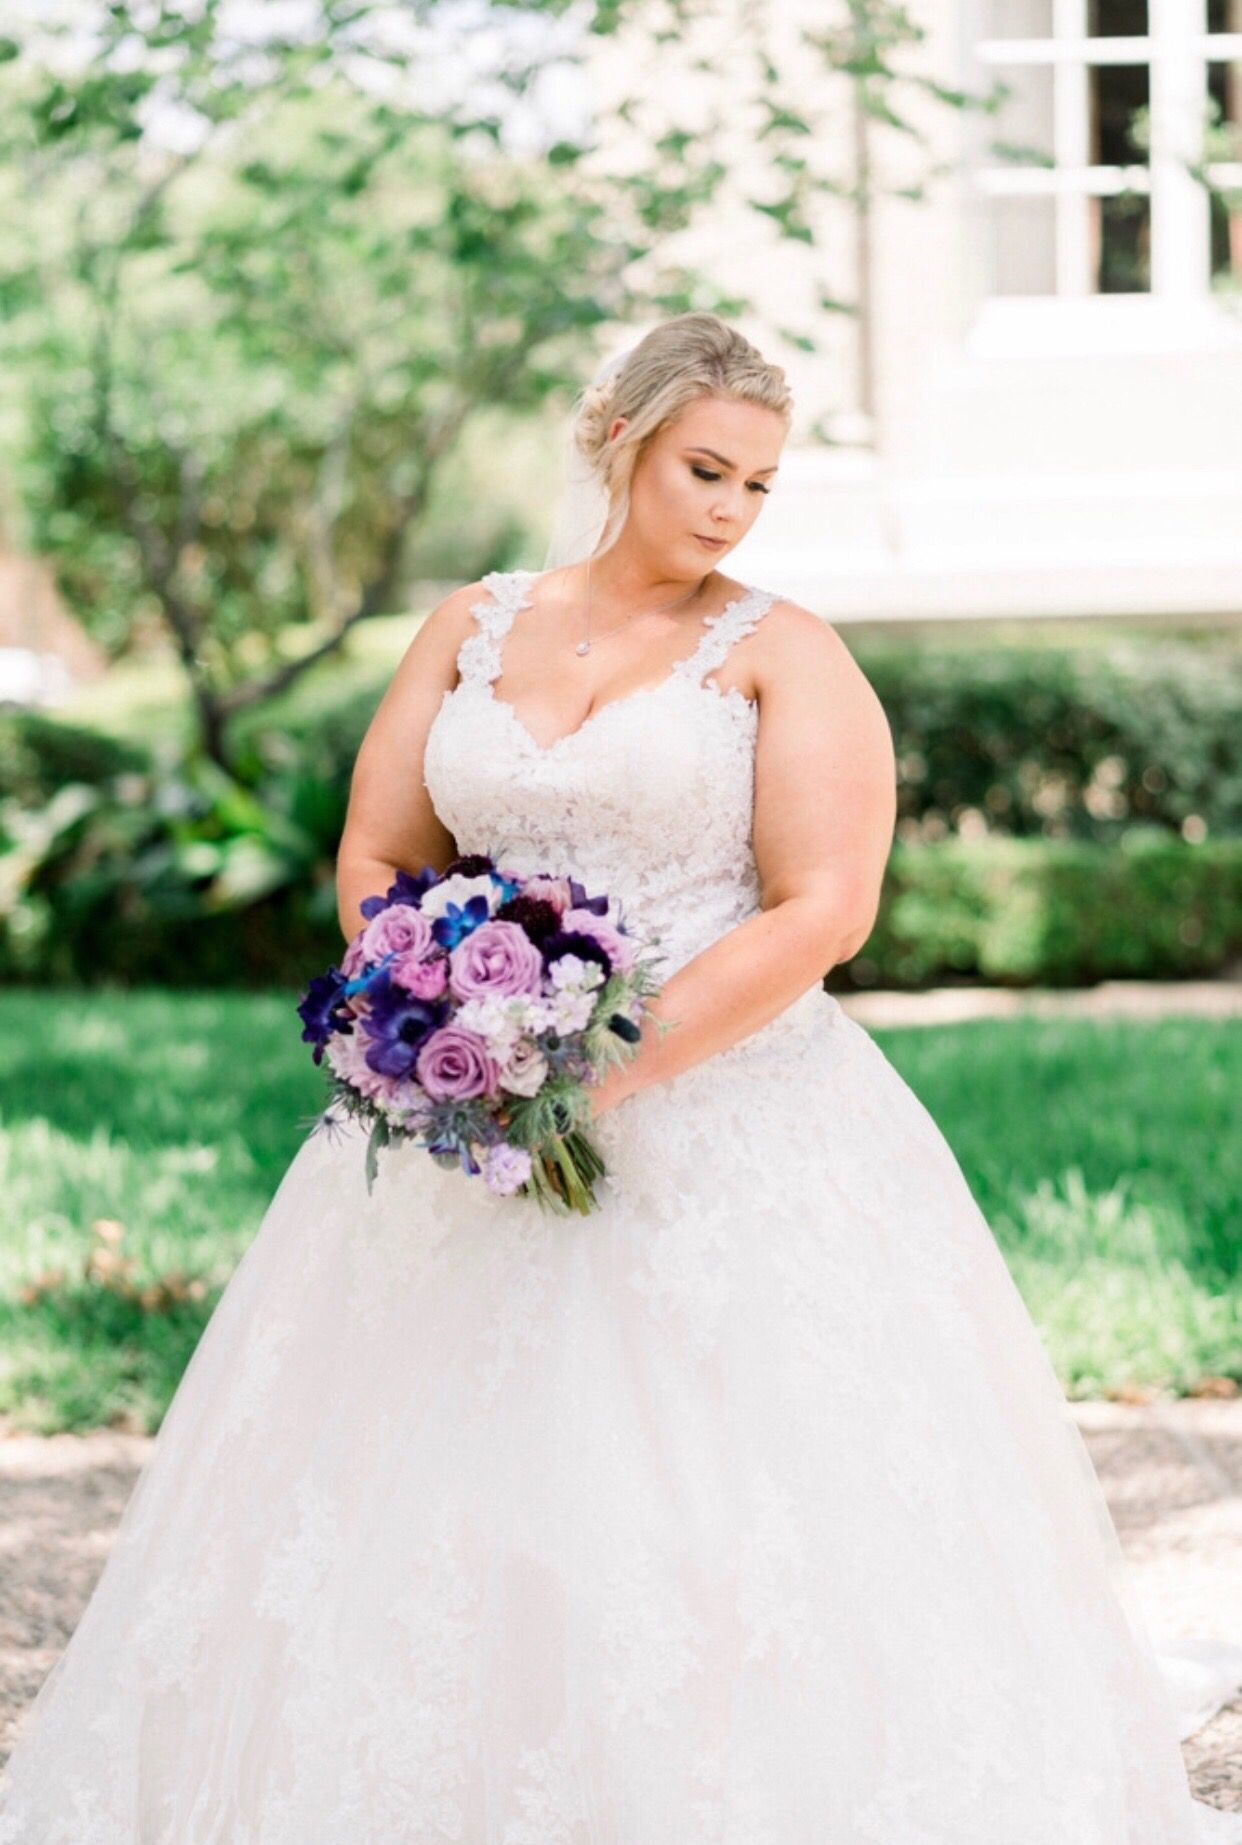 Our RealBride Erin looked perfect in her Sophia Tolli